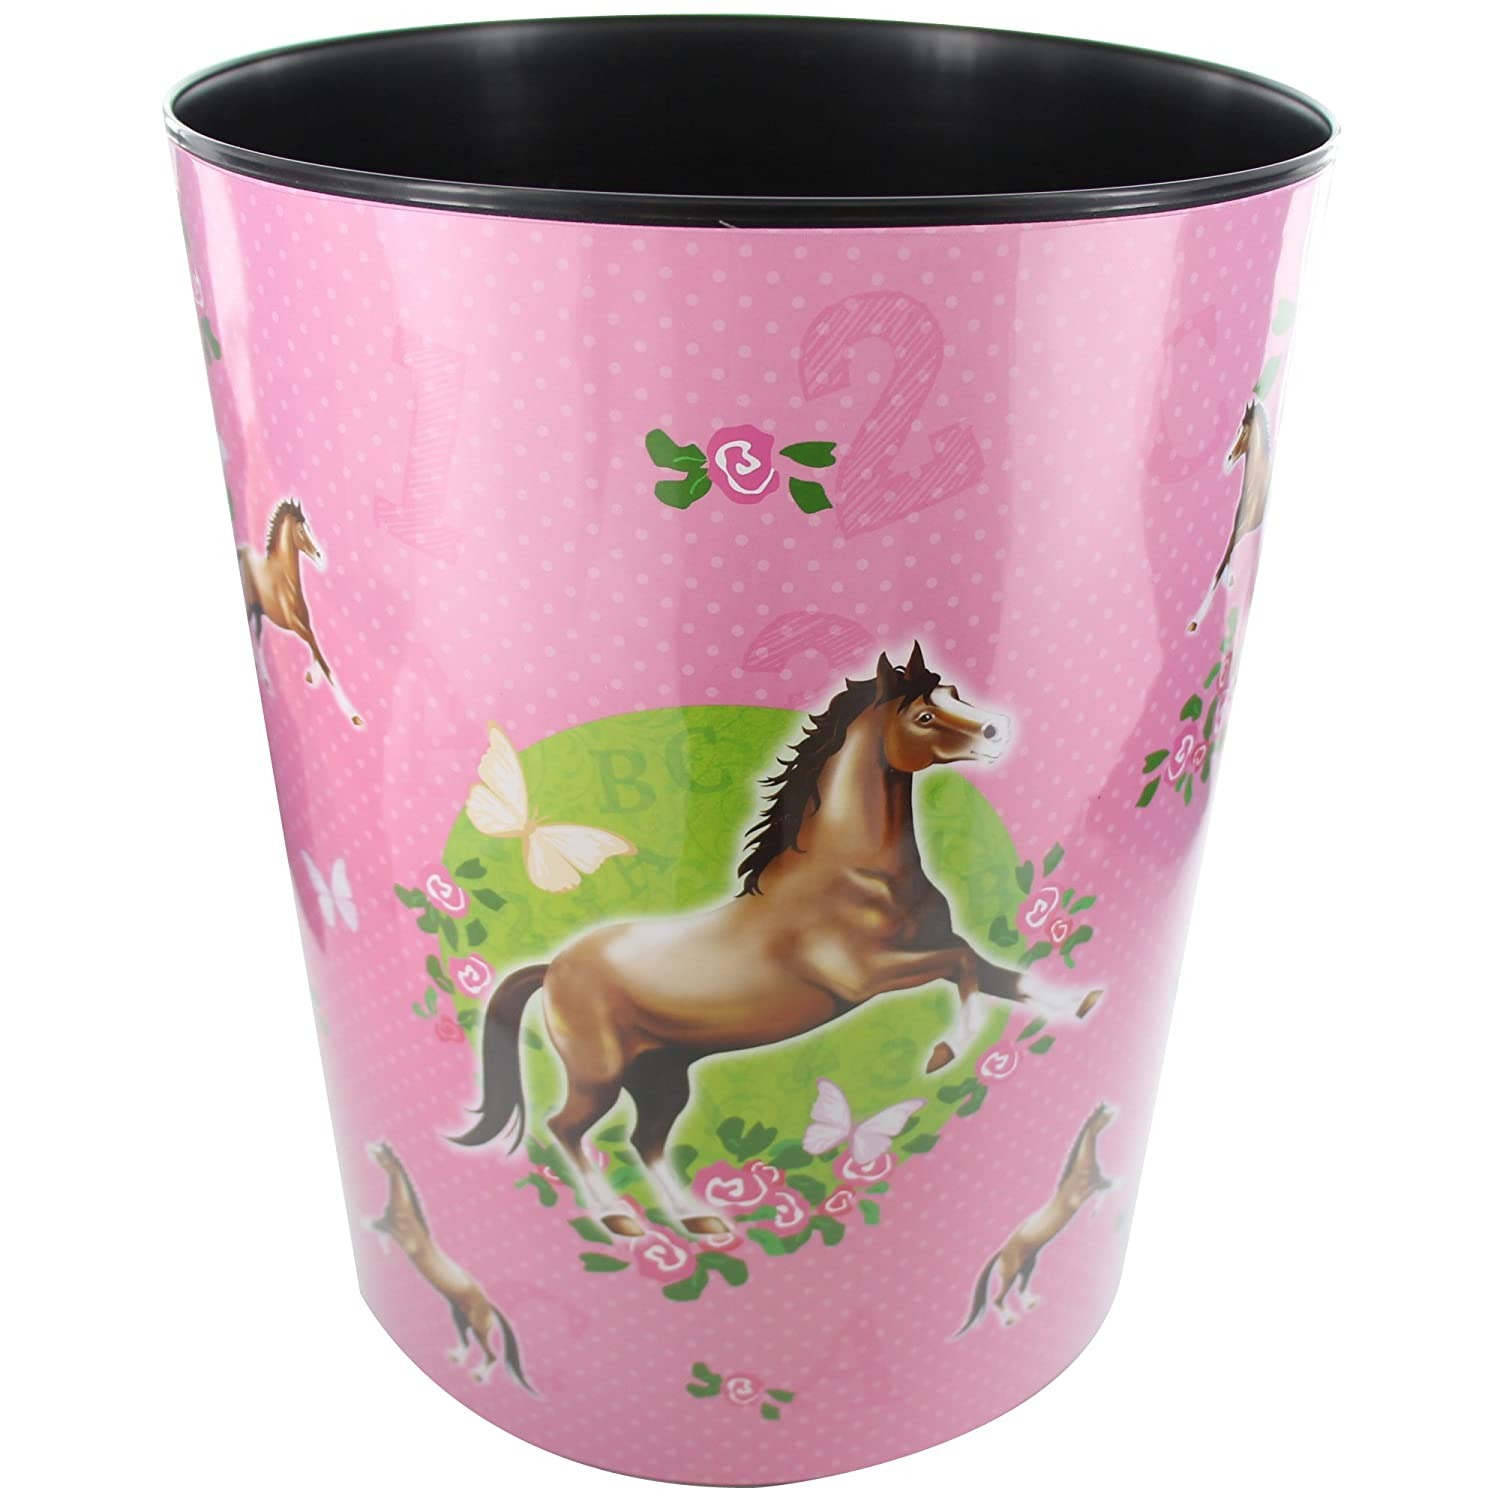 Goldbuch 82 001 Waste Paper Bin with Horse Design 82 001